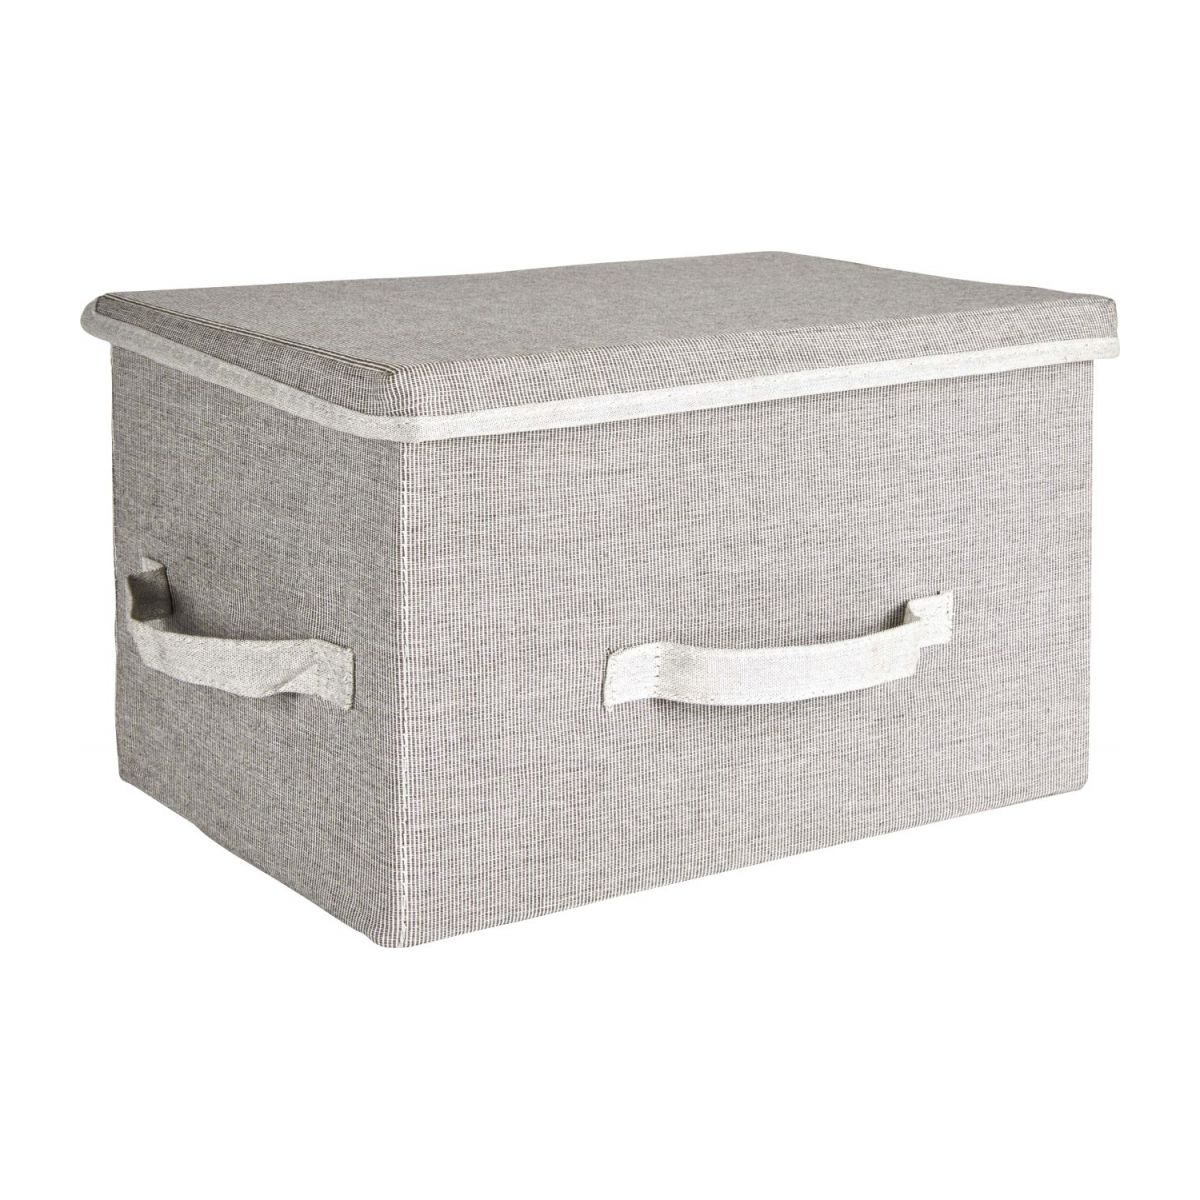 Large Storage basket, grey fabric and bamboo n°1